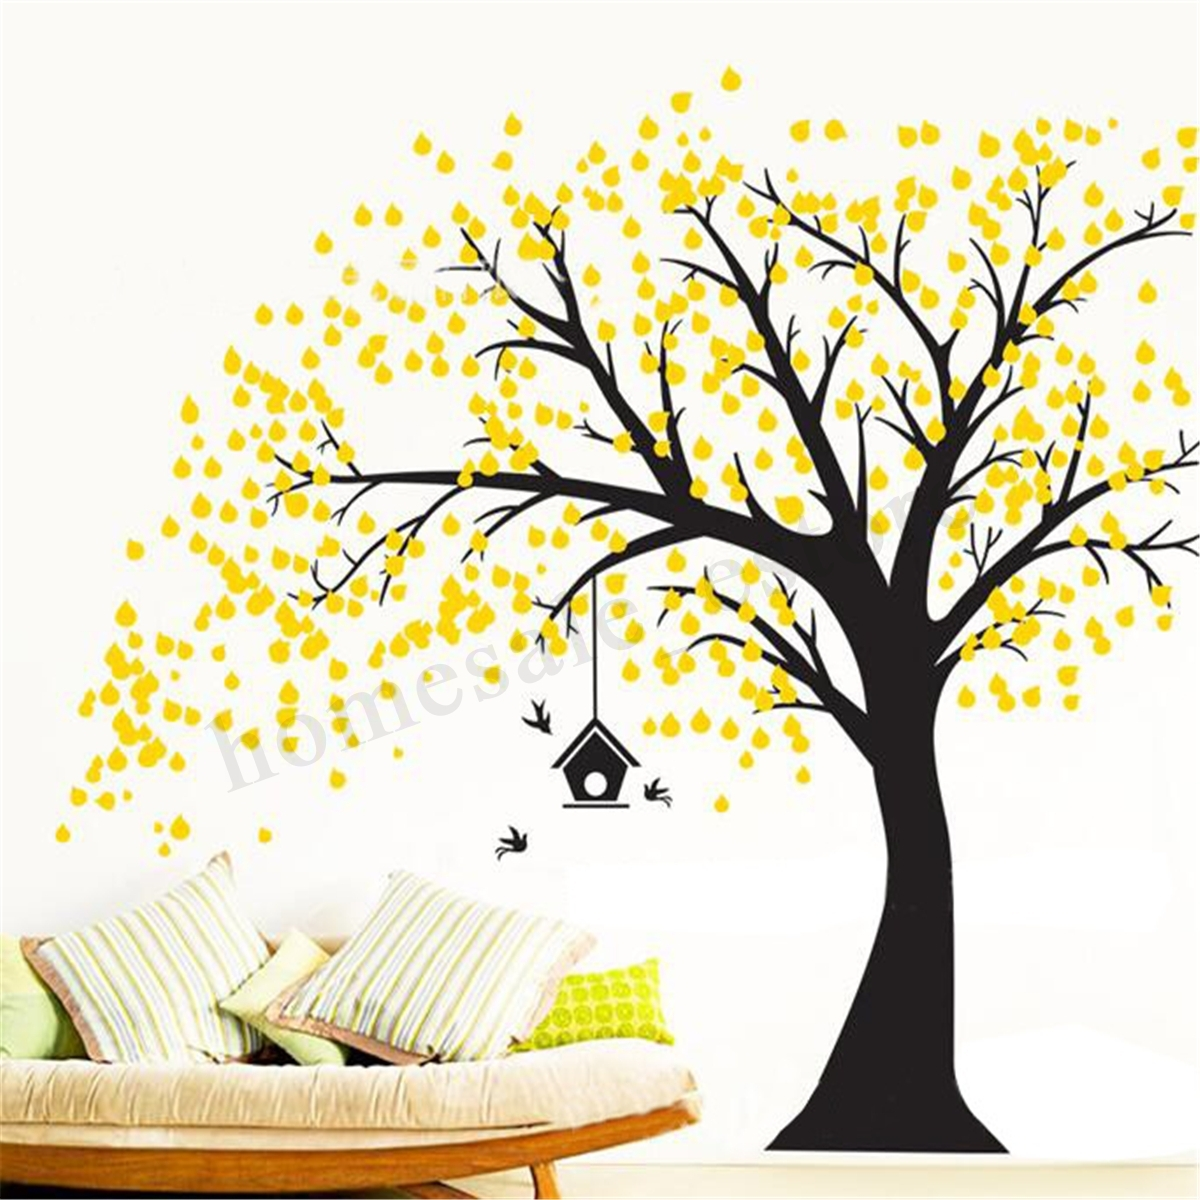 210Cmx180Cm Diy Tree Wall Paper Art Wall Sticker Home Bedroom Bbay Throughout Best And Newest Wall Tree Art (View 1 of 20)